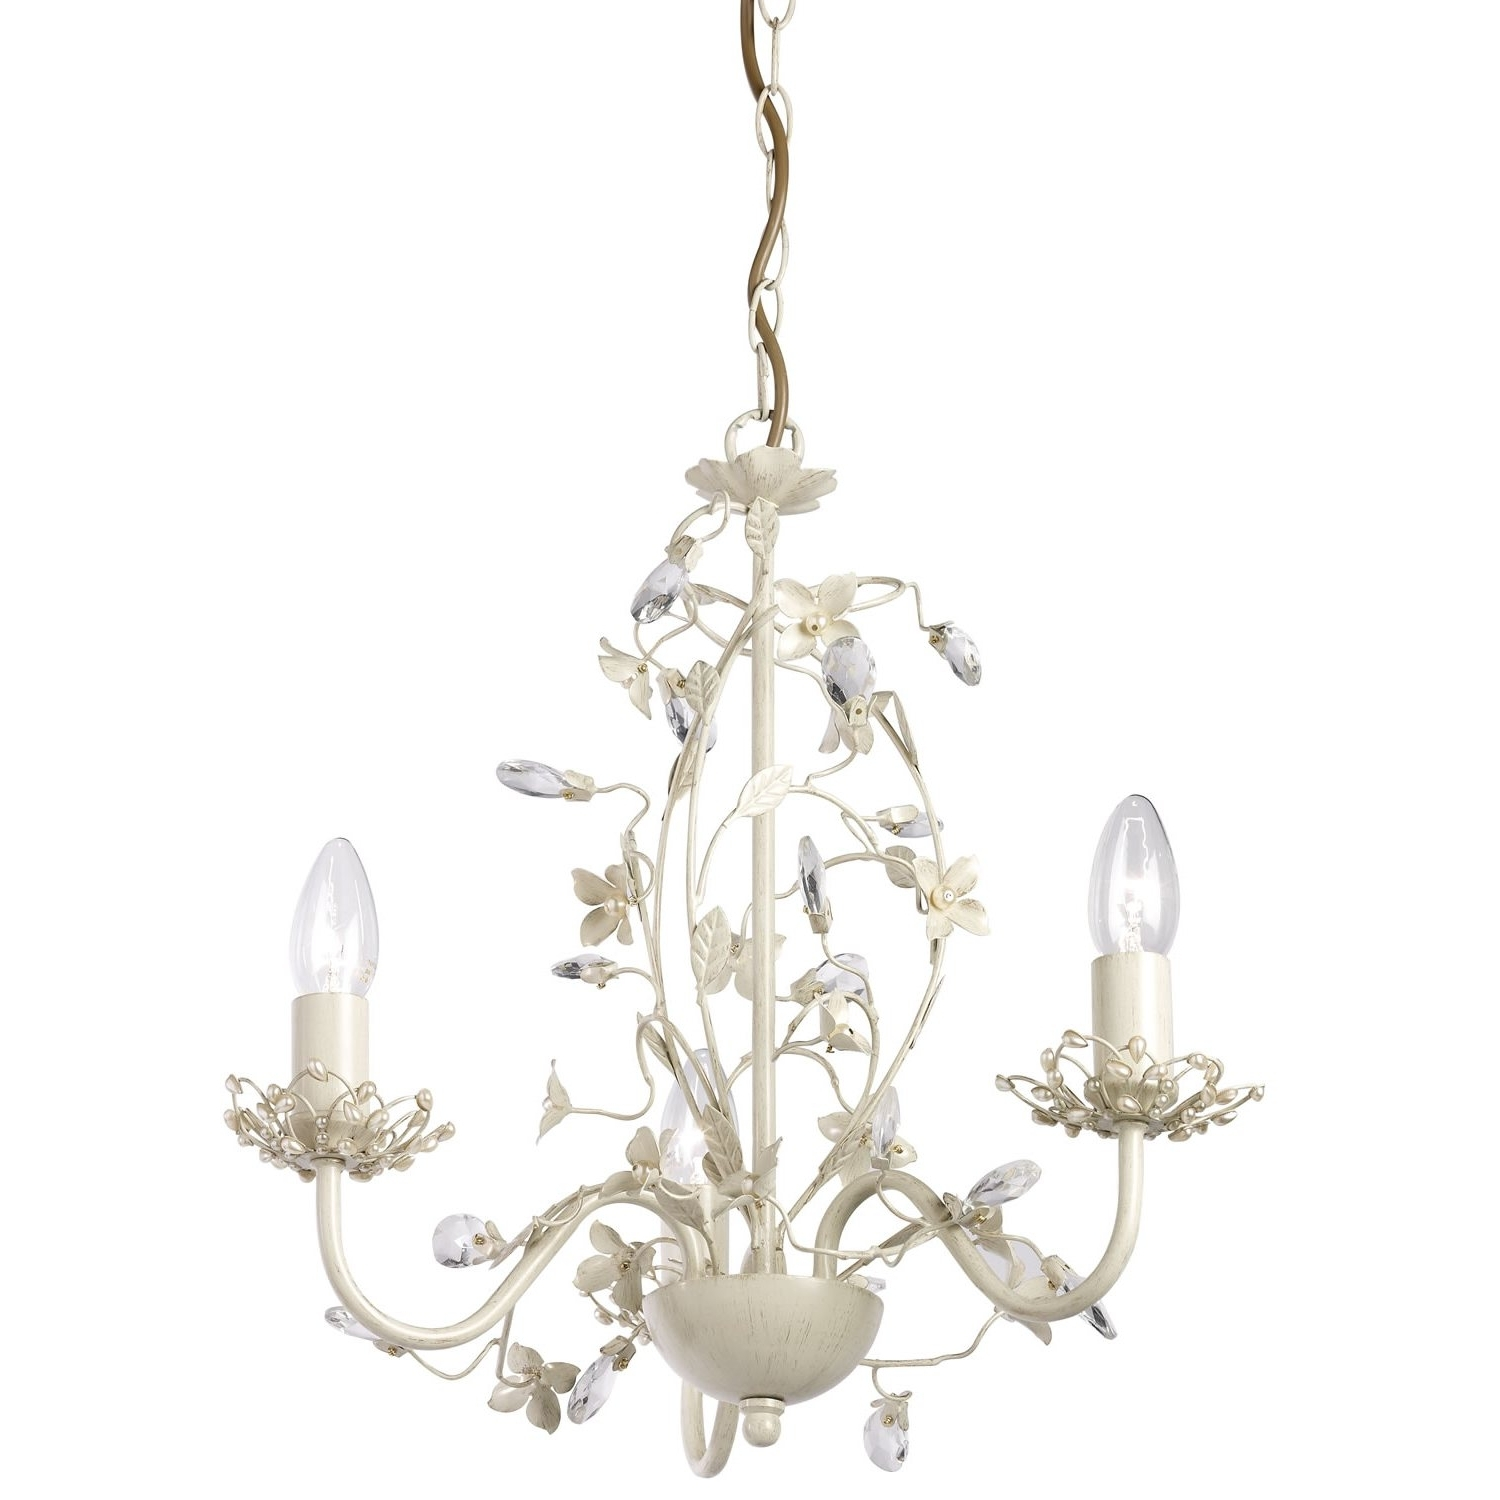 Tirtagucipool Within Well Liked Endon Lighting Chandeliers (View 6 of 15)